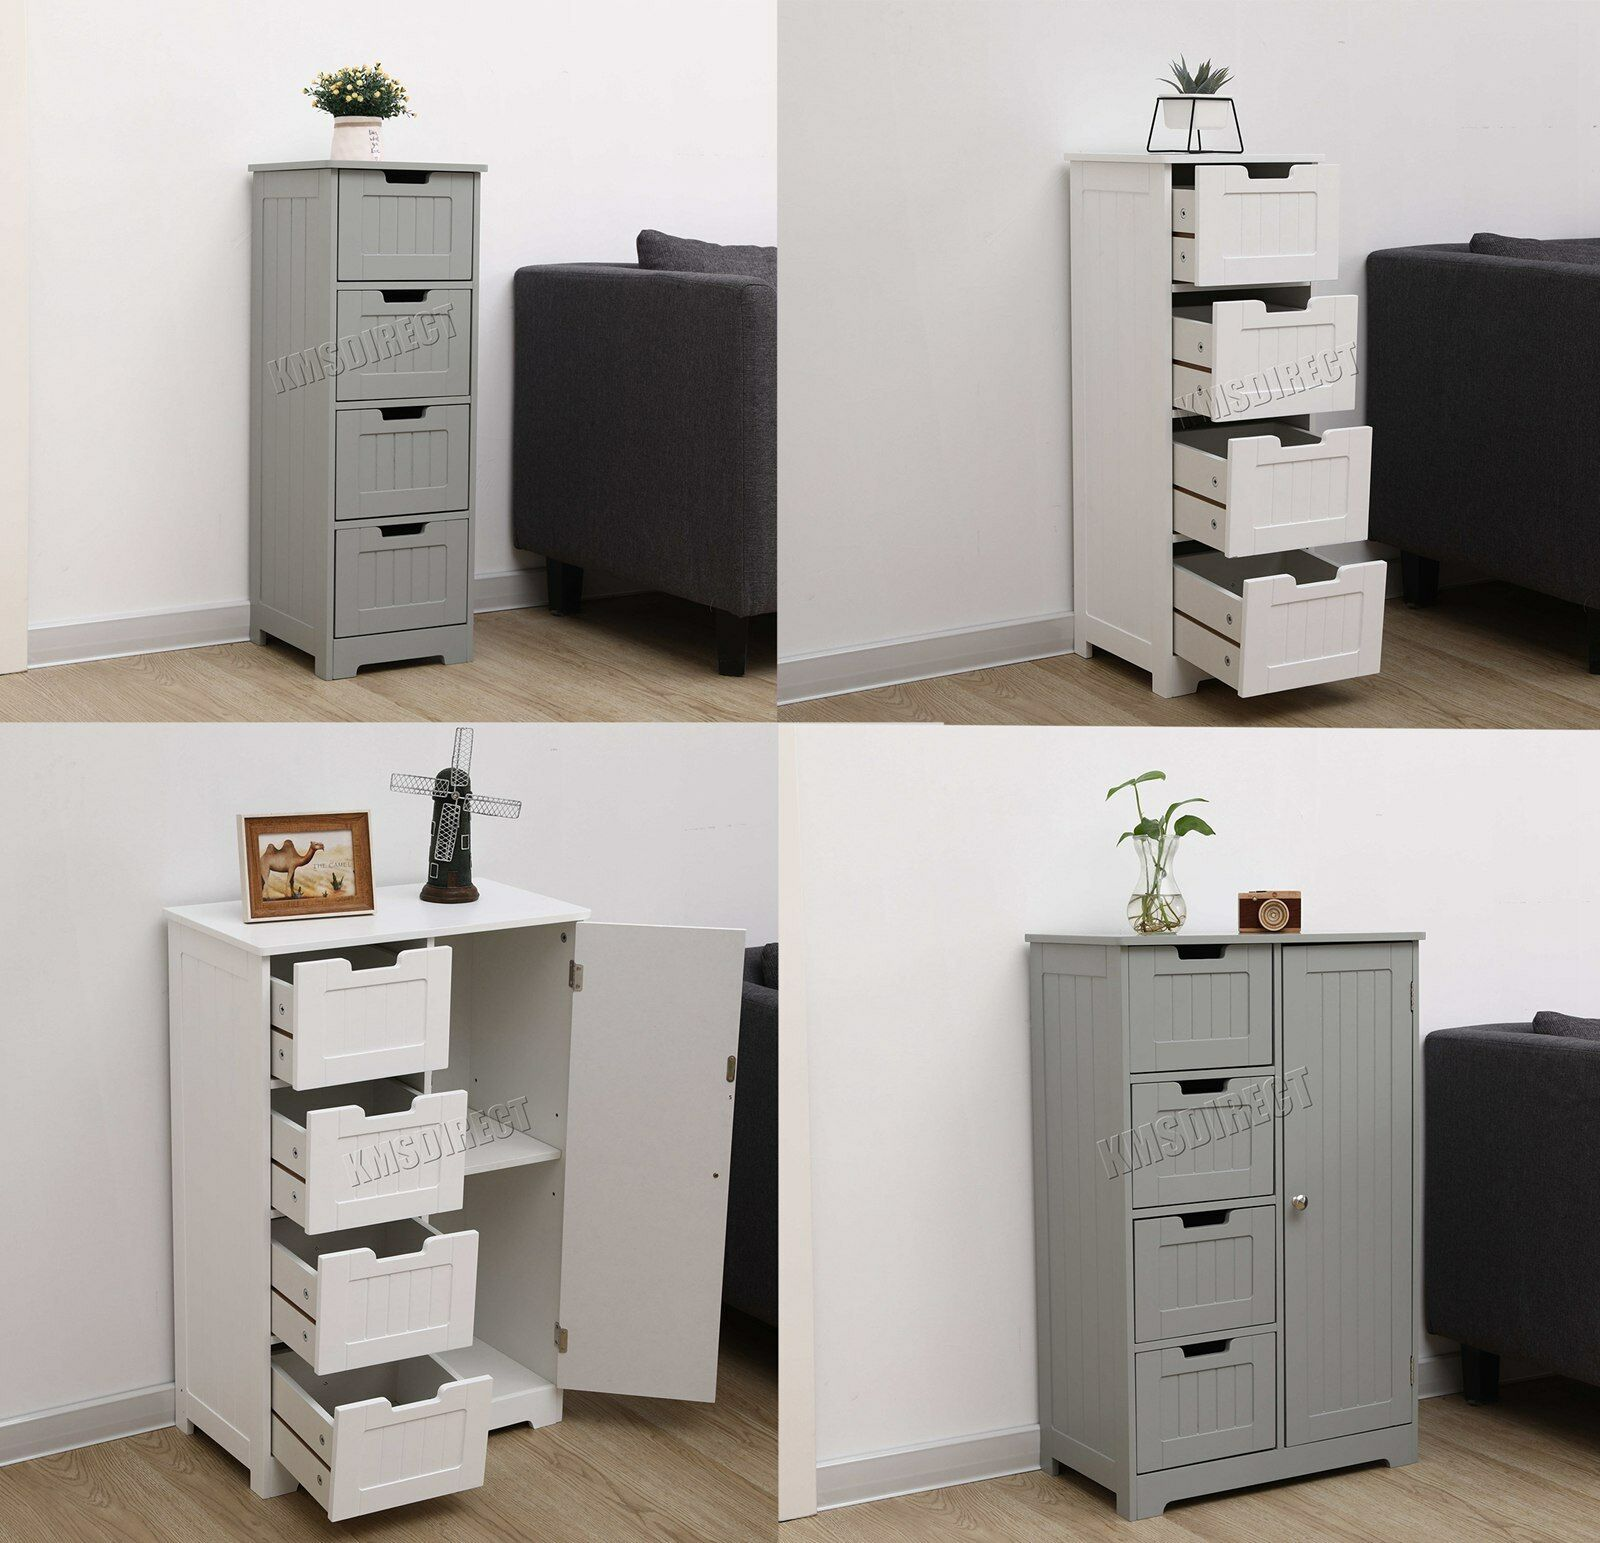 Foxhunter White Wooden 4 Drawer Bathroom Storage Cupboard Cabinet Standing Unit 1 Of 12free Shipping